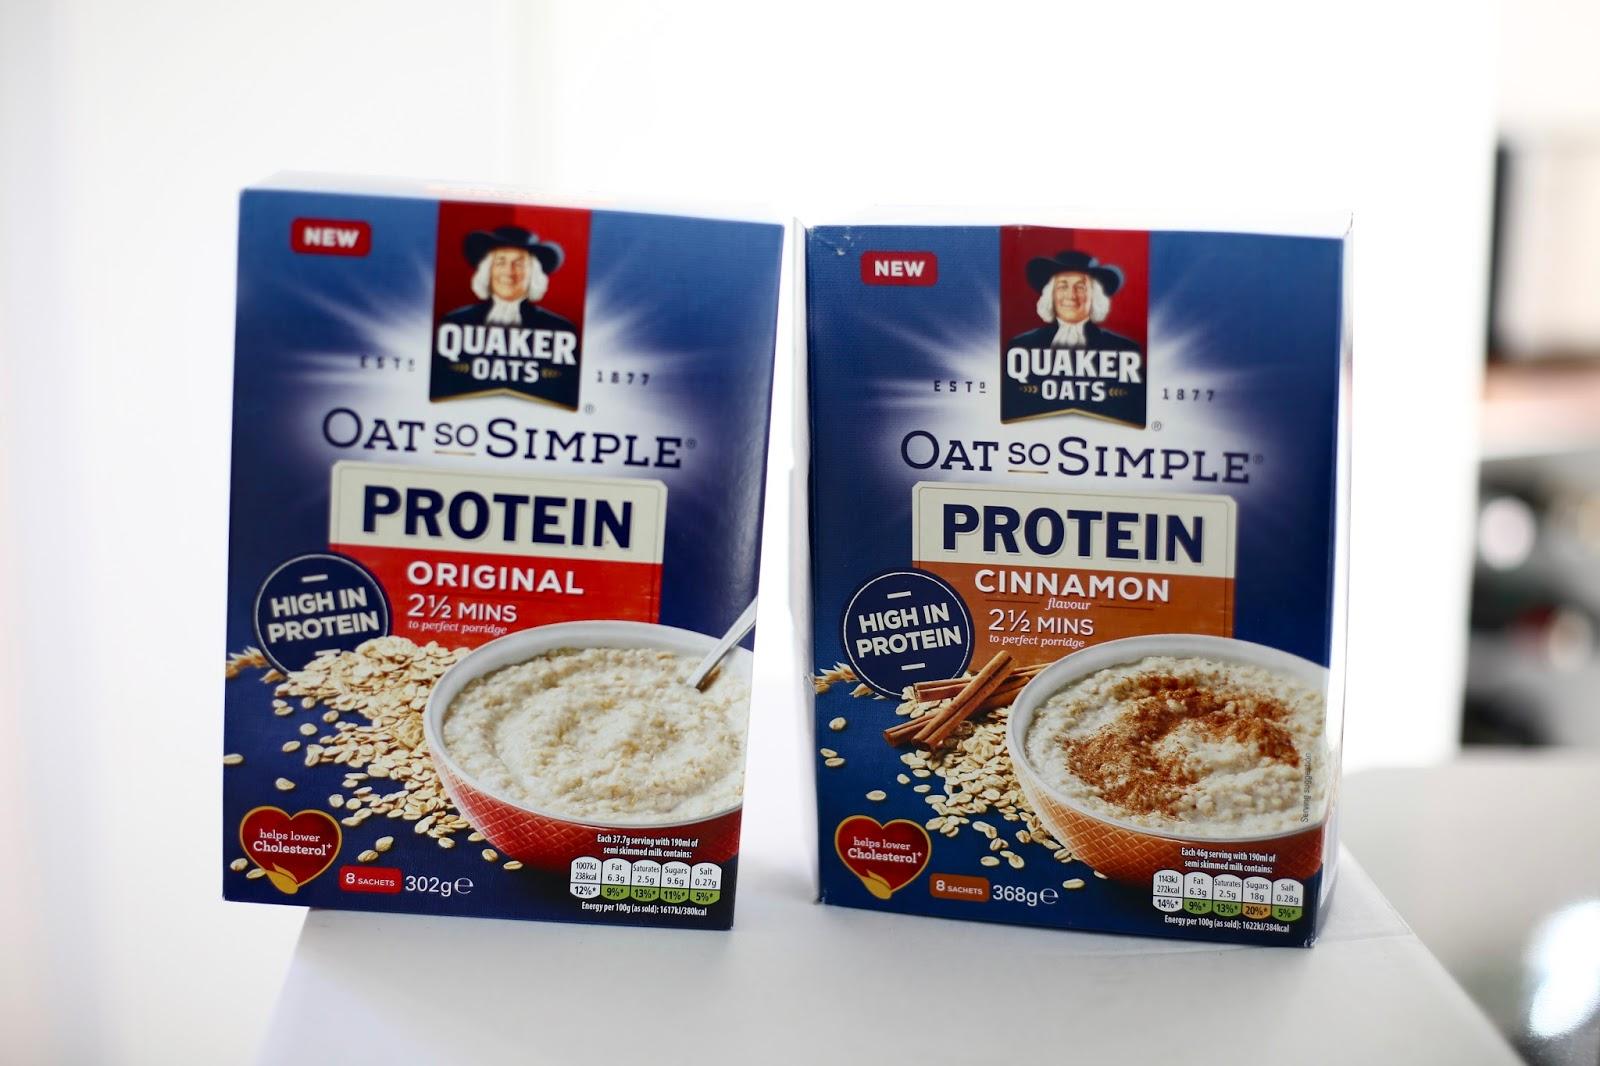 Quaker Oats so simple protein